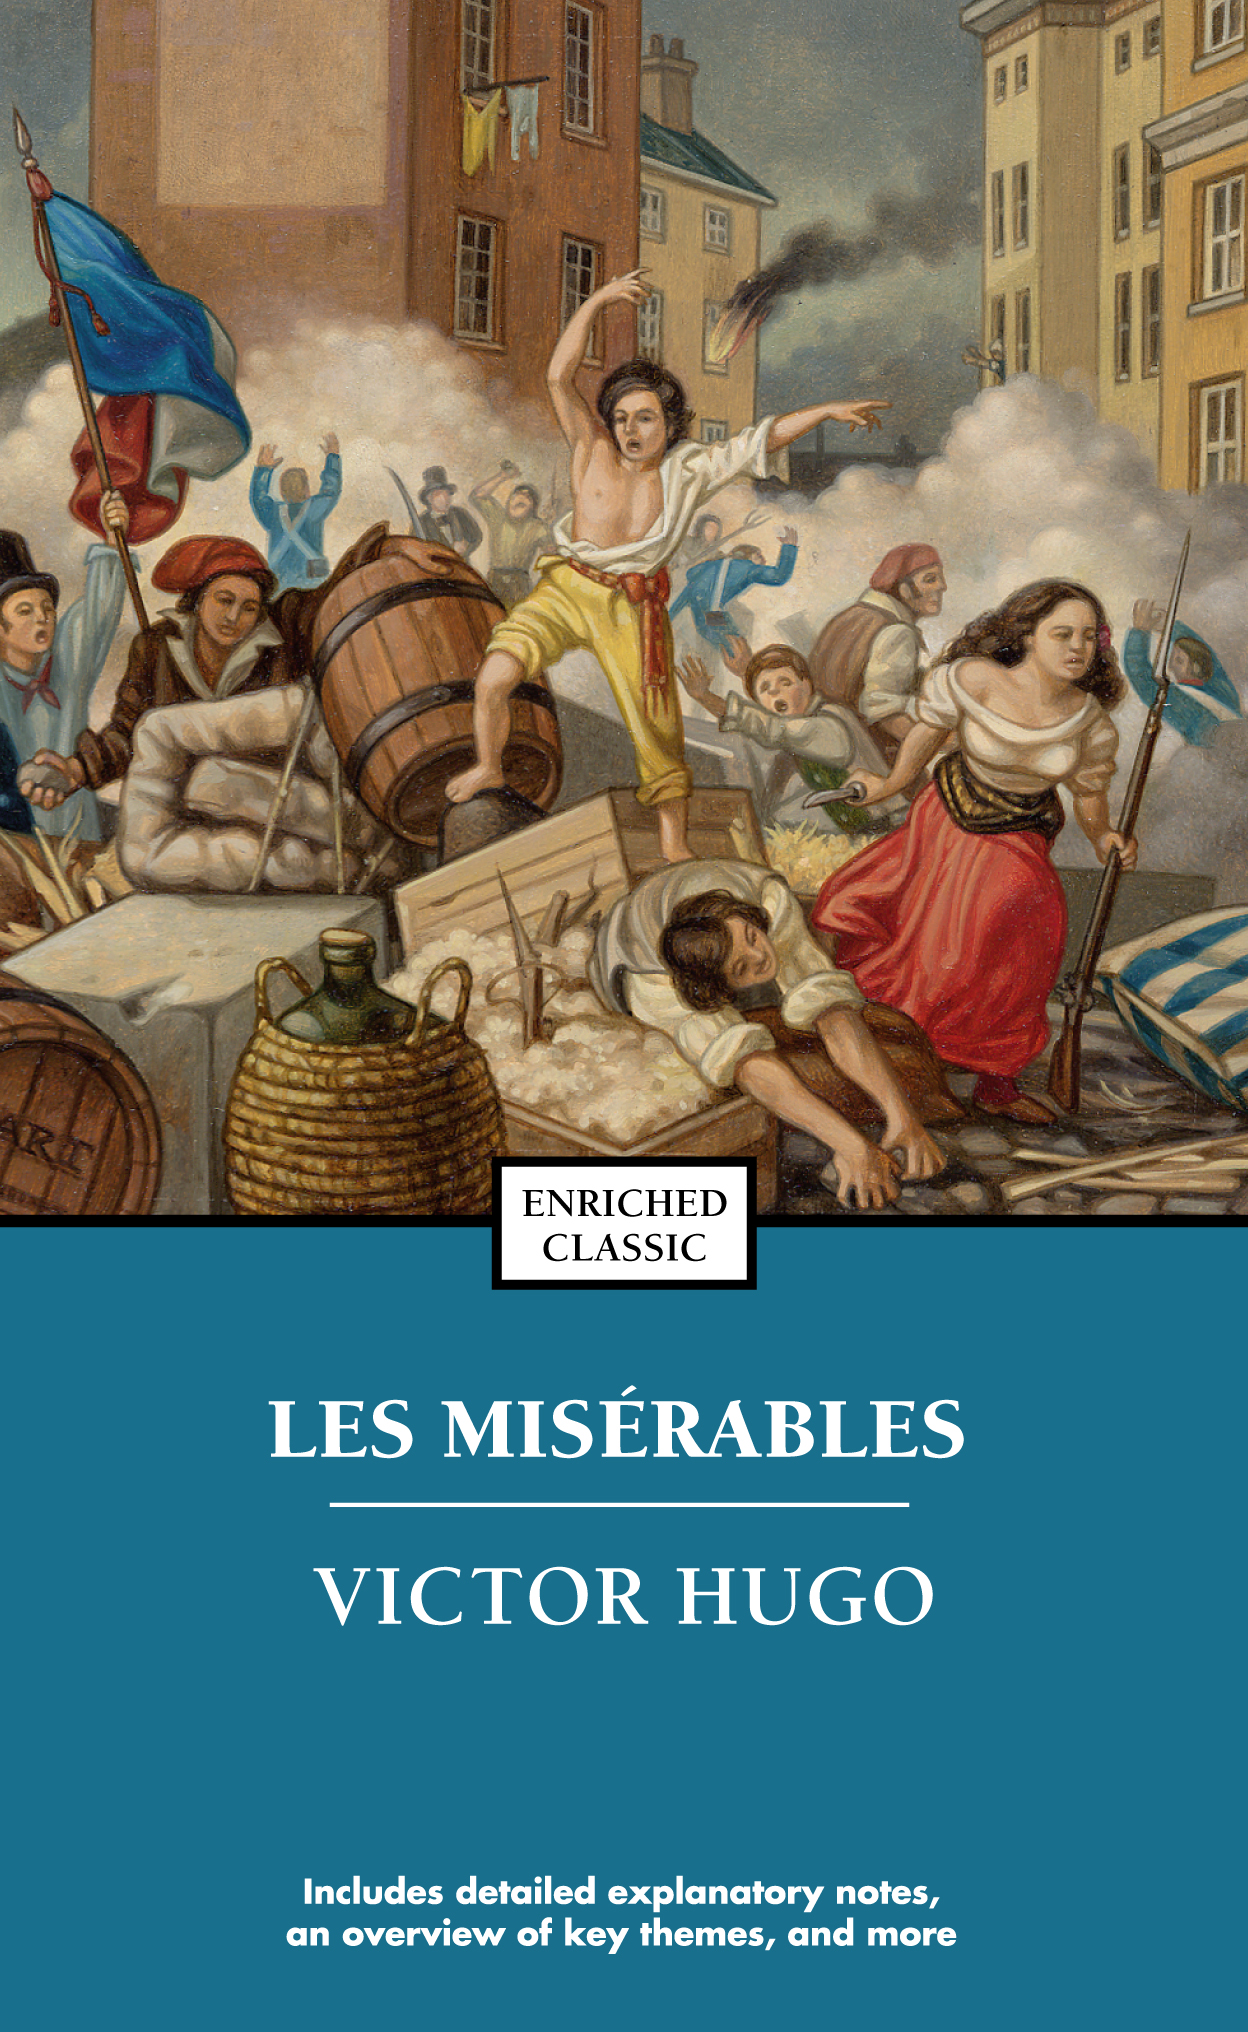 an analysis of the characters in the novel les miserables by victor hugo Detailed analysis of in victor hugo's les misérables learn all about how the in les misérables such as jean valjean and monseigneur bienvenu contribute to the.